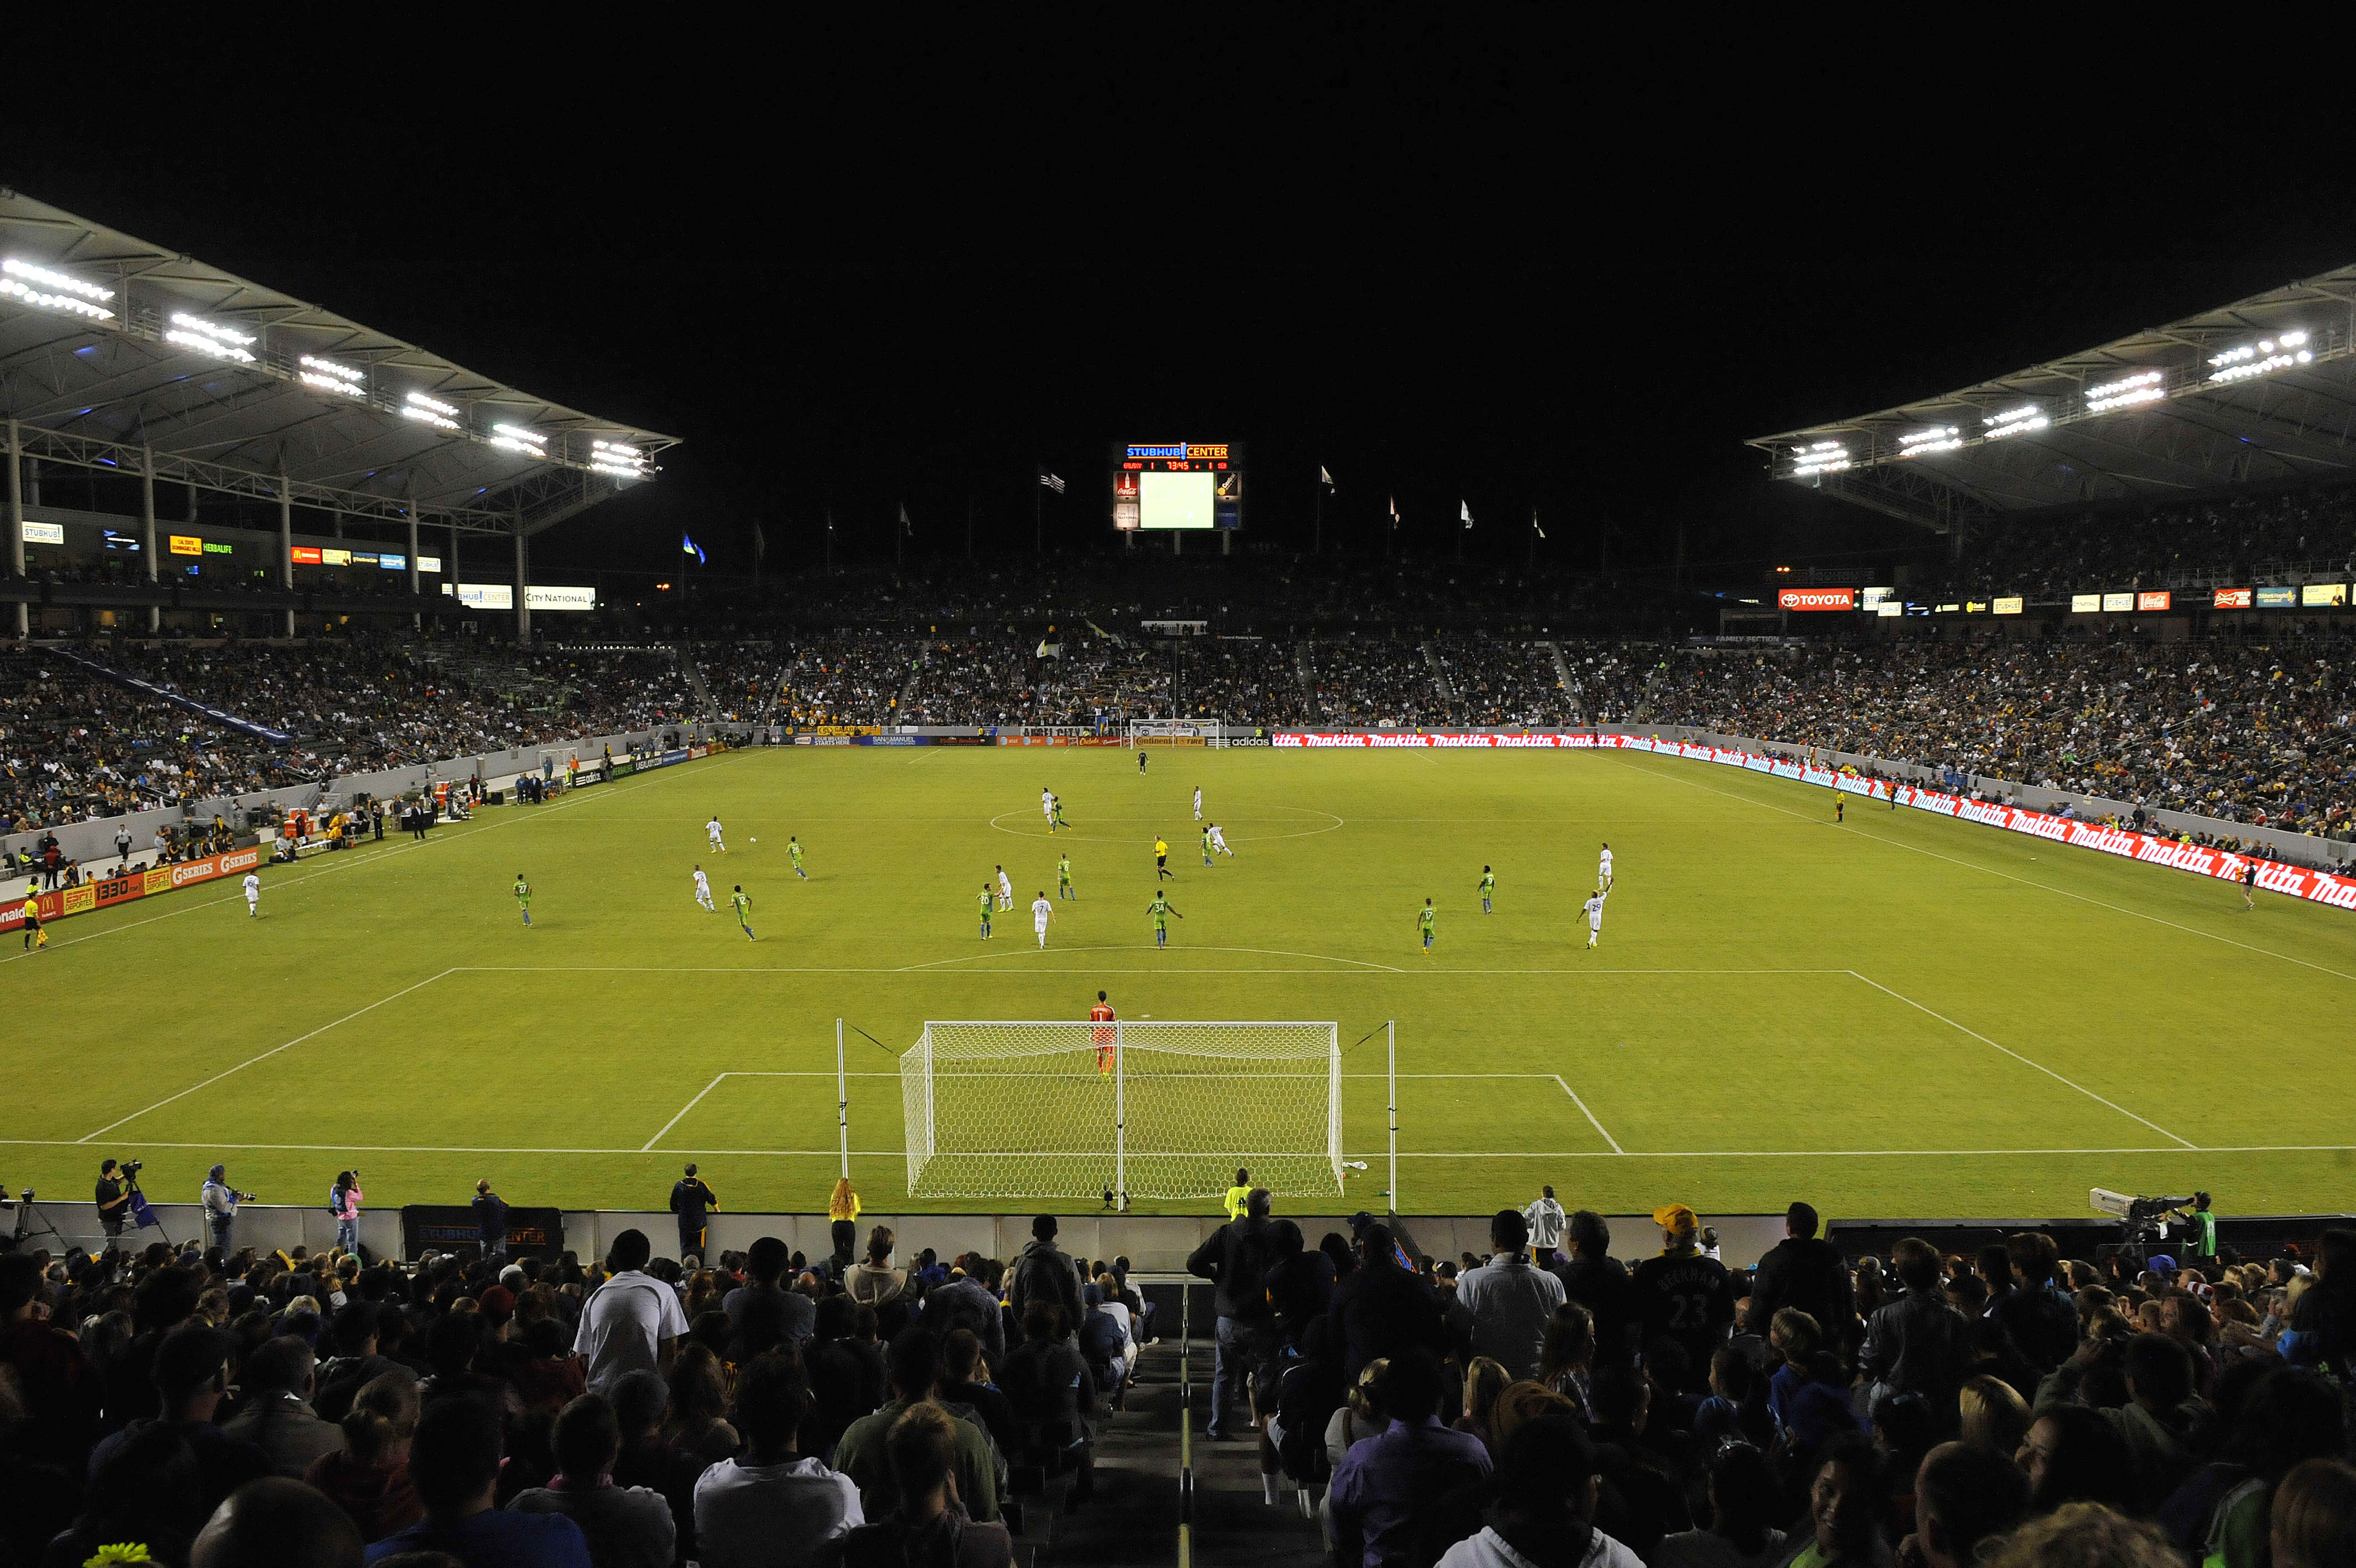 A general view of the StubHub! Center. That's where the Galaxy play.